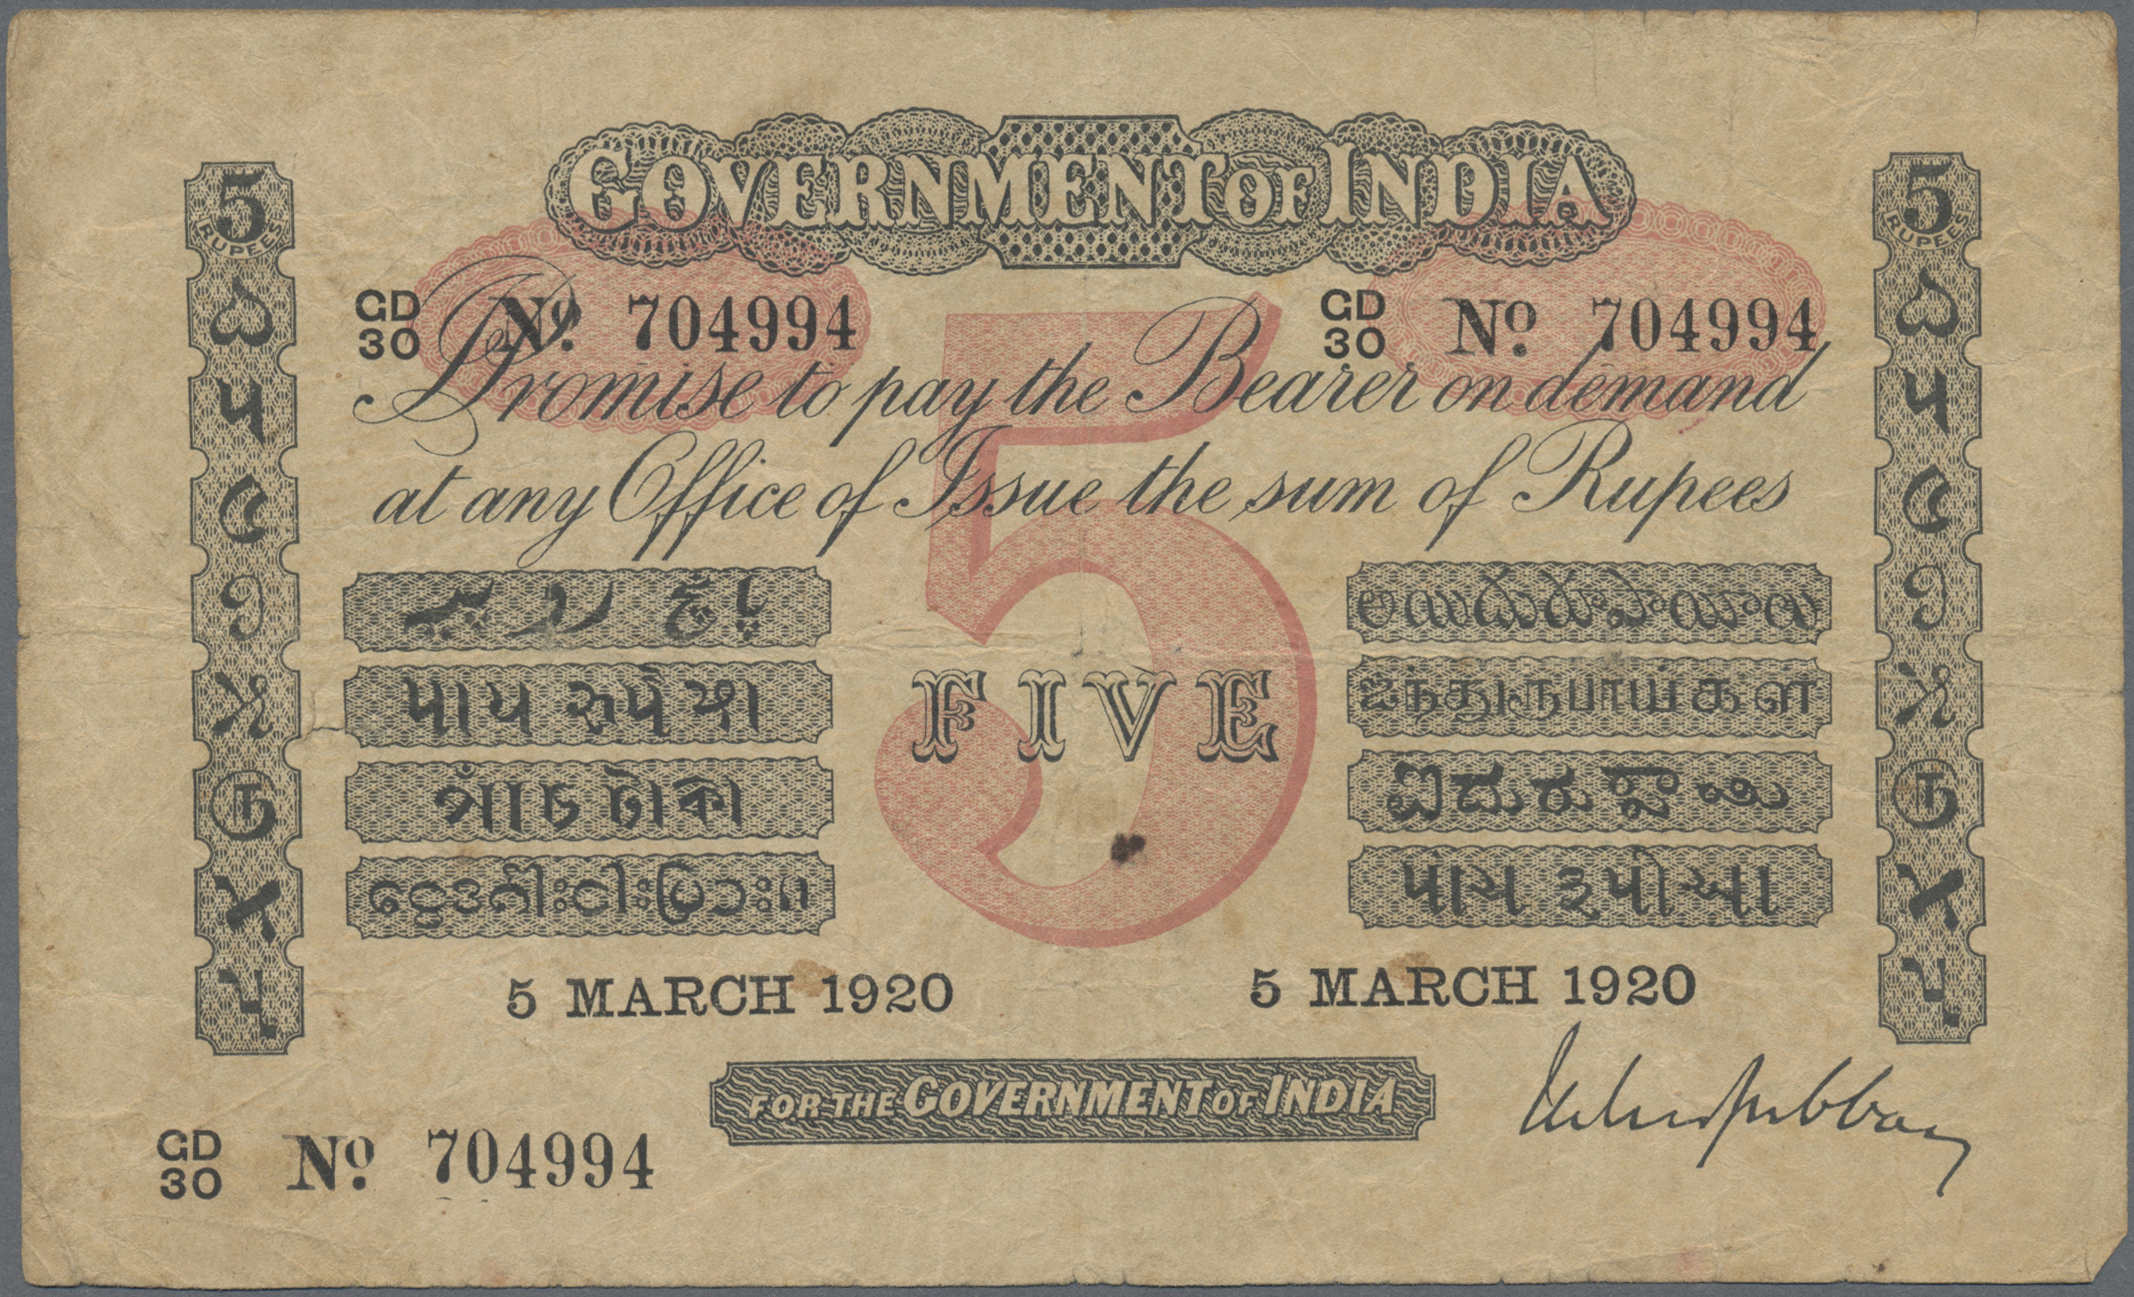 Lot 809 - India / Indien | Banknoten  -  Auktionshaus Christoph Gärtner GmbH & Co. KG Banknotes Worldwide Auction #39 Day 1